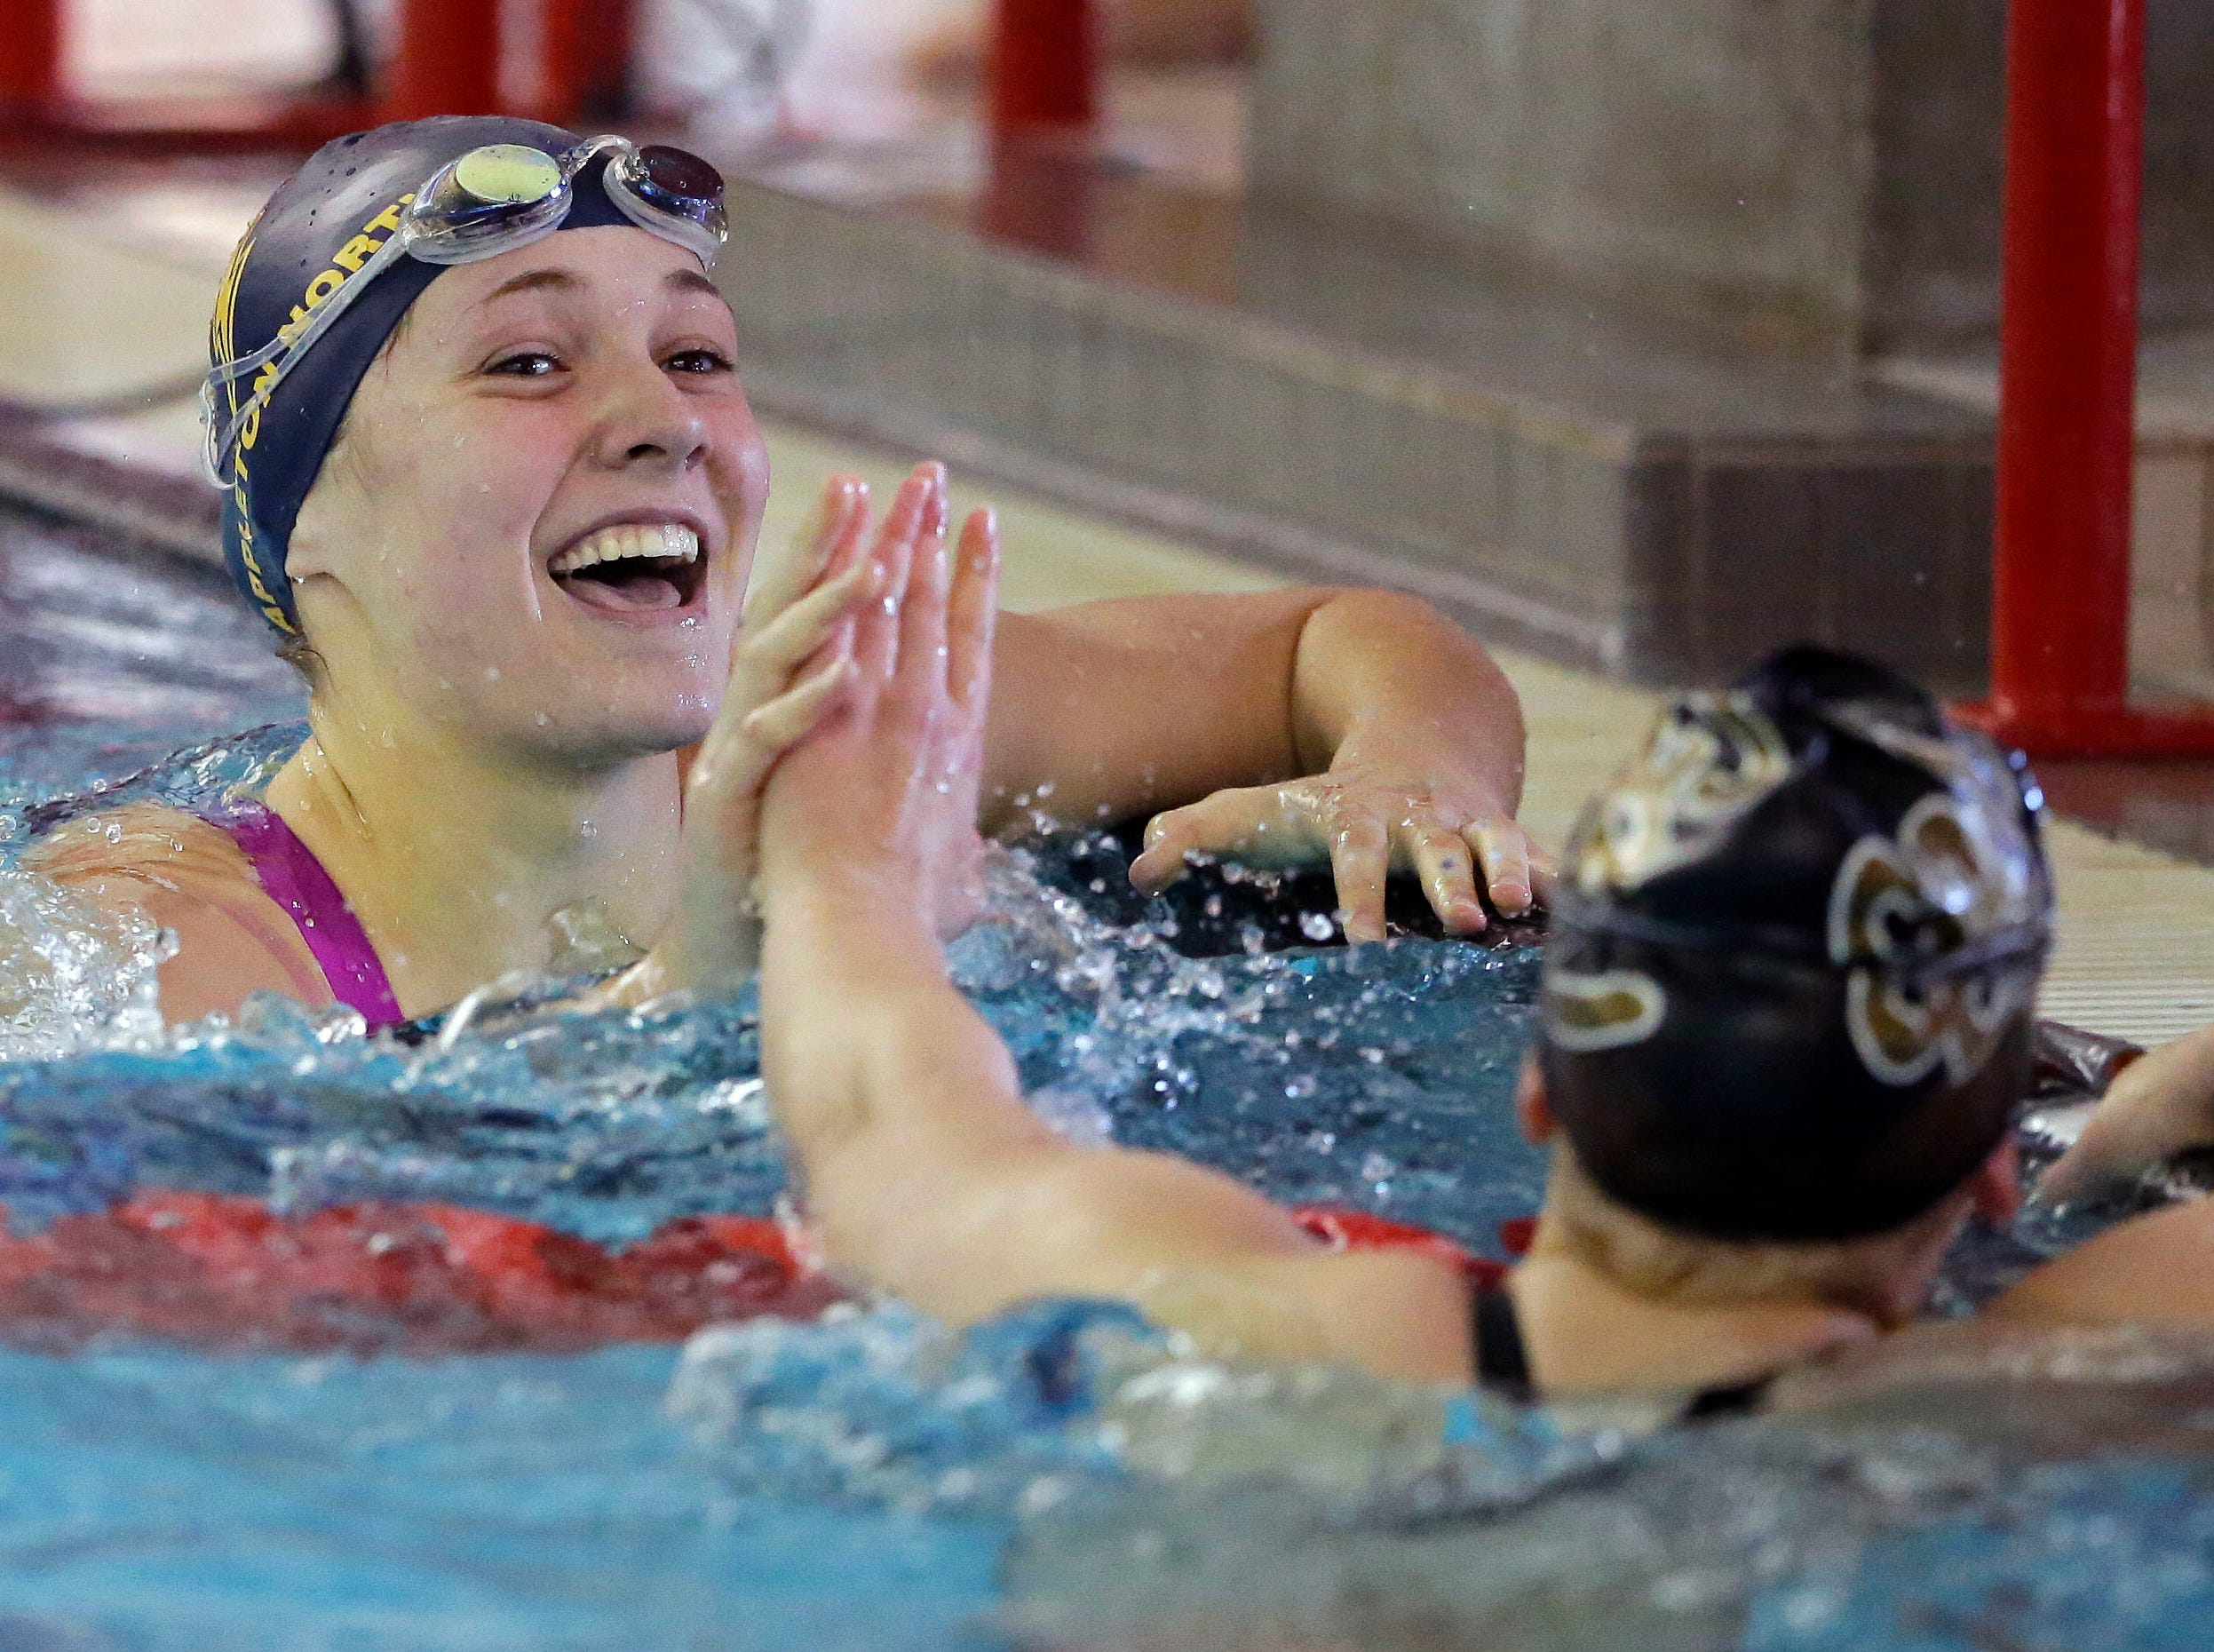 Joy Vandenberg of Appleton North and Annabelle Metzler of Green Bay SW have congratulations for each other at the finish of the 50 Yard Freestyle as the WIAA Division 1 swimming sectional meet takes place Saturday, November 3, 2018, at Neenah High School in Neenah, Wis. Winners advanced to state.Ron Page/USA TODAY NETWORK-Wisconsin